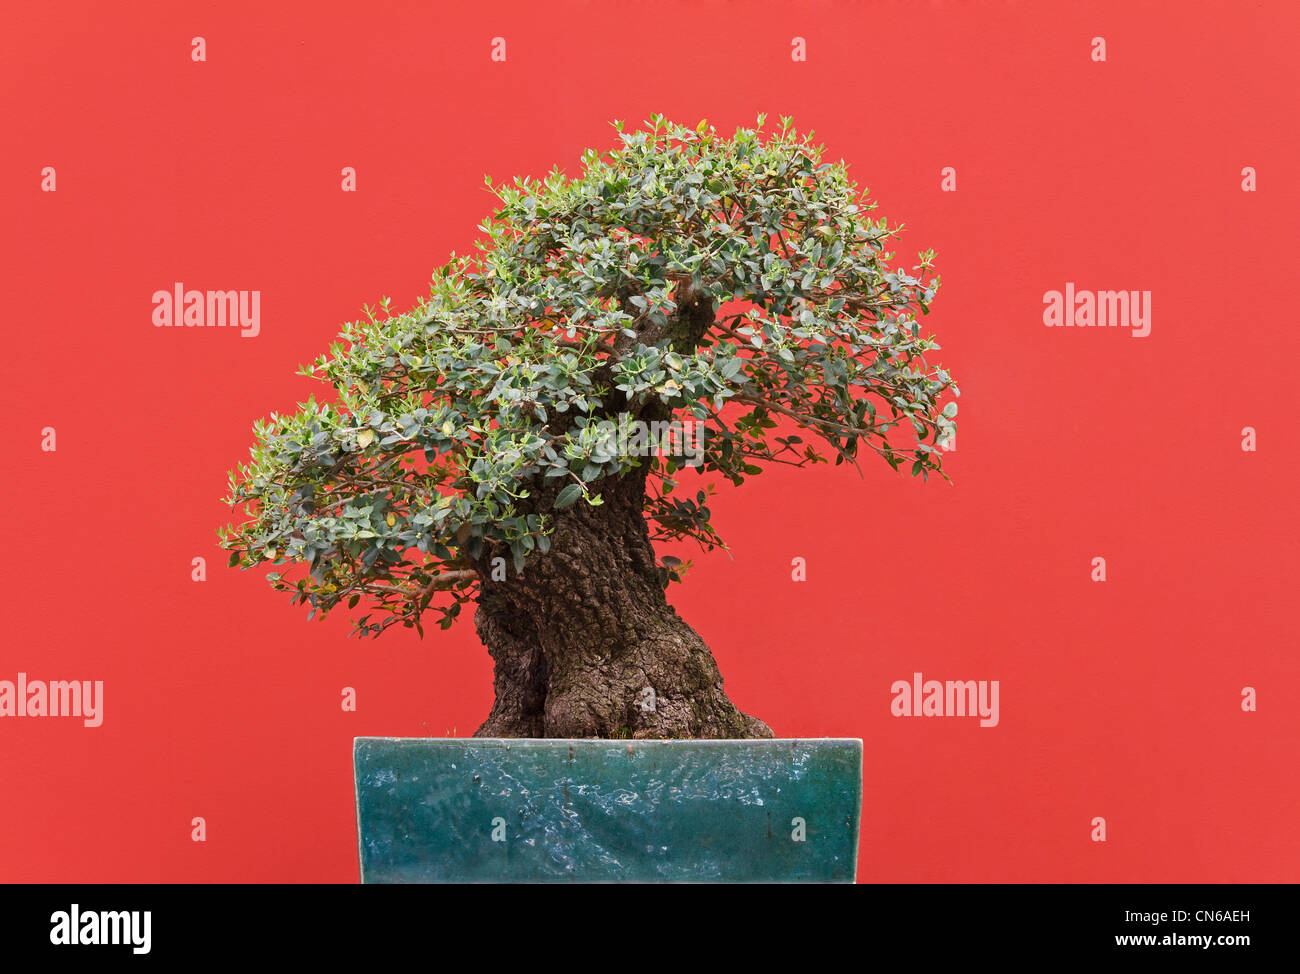 very old Zelkova bonsai over red background - Stock Image